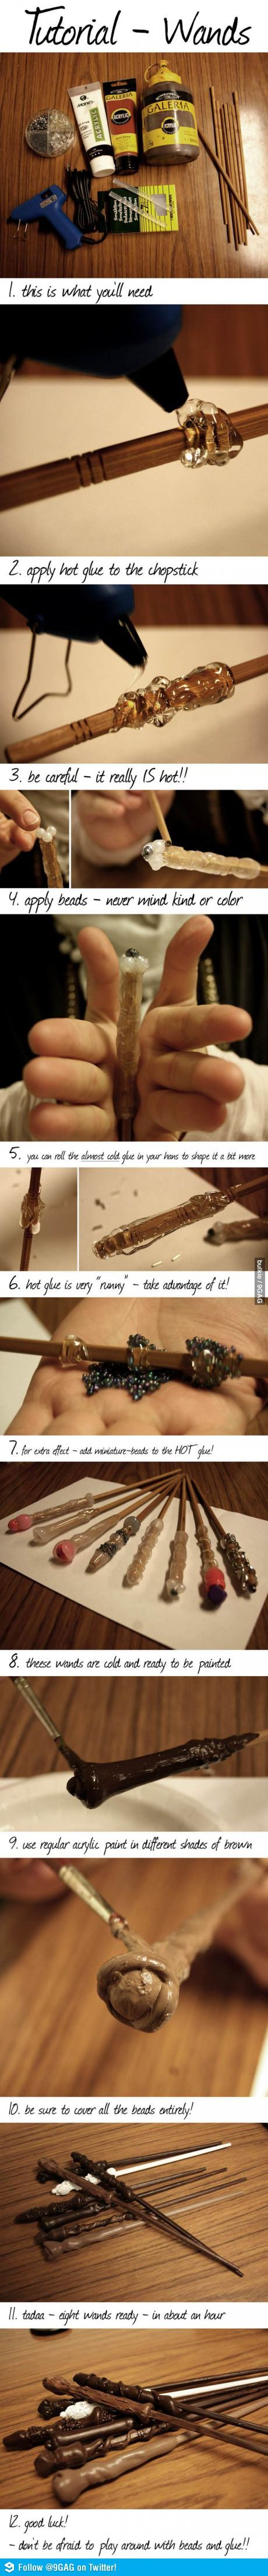 A really awesome WAND MAKING tutorial. All witches and wizards need one!